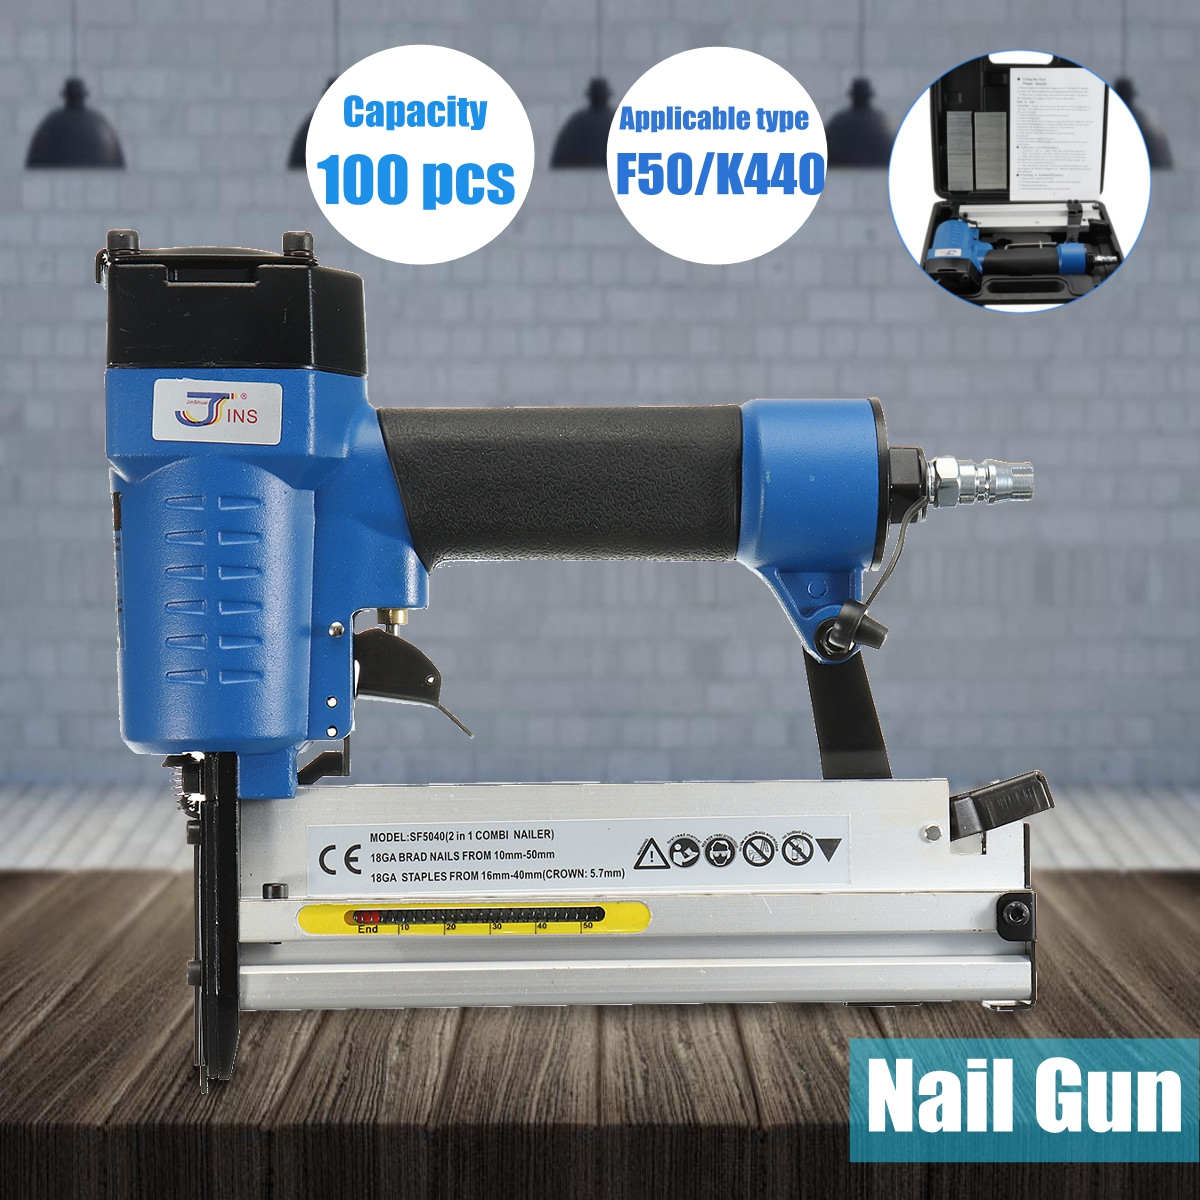 Portable 2 in 1 F50/K440 Electric Staple Air Nailer G un Straight Finishing Nail G un Woodworking Tool кристальный пазл 3d crystal puzzle яблоко зеленое